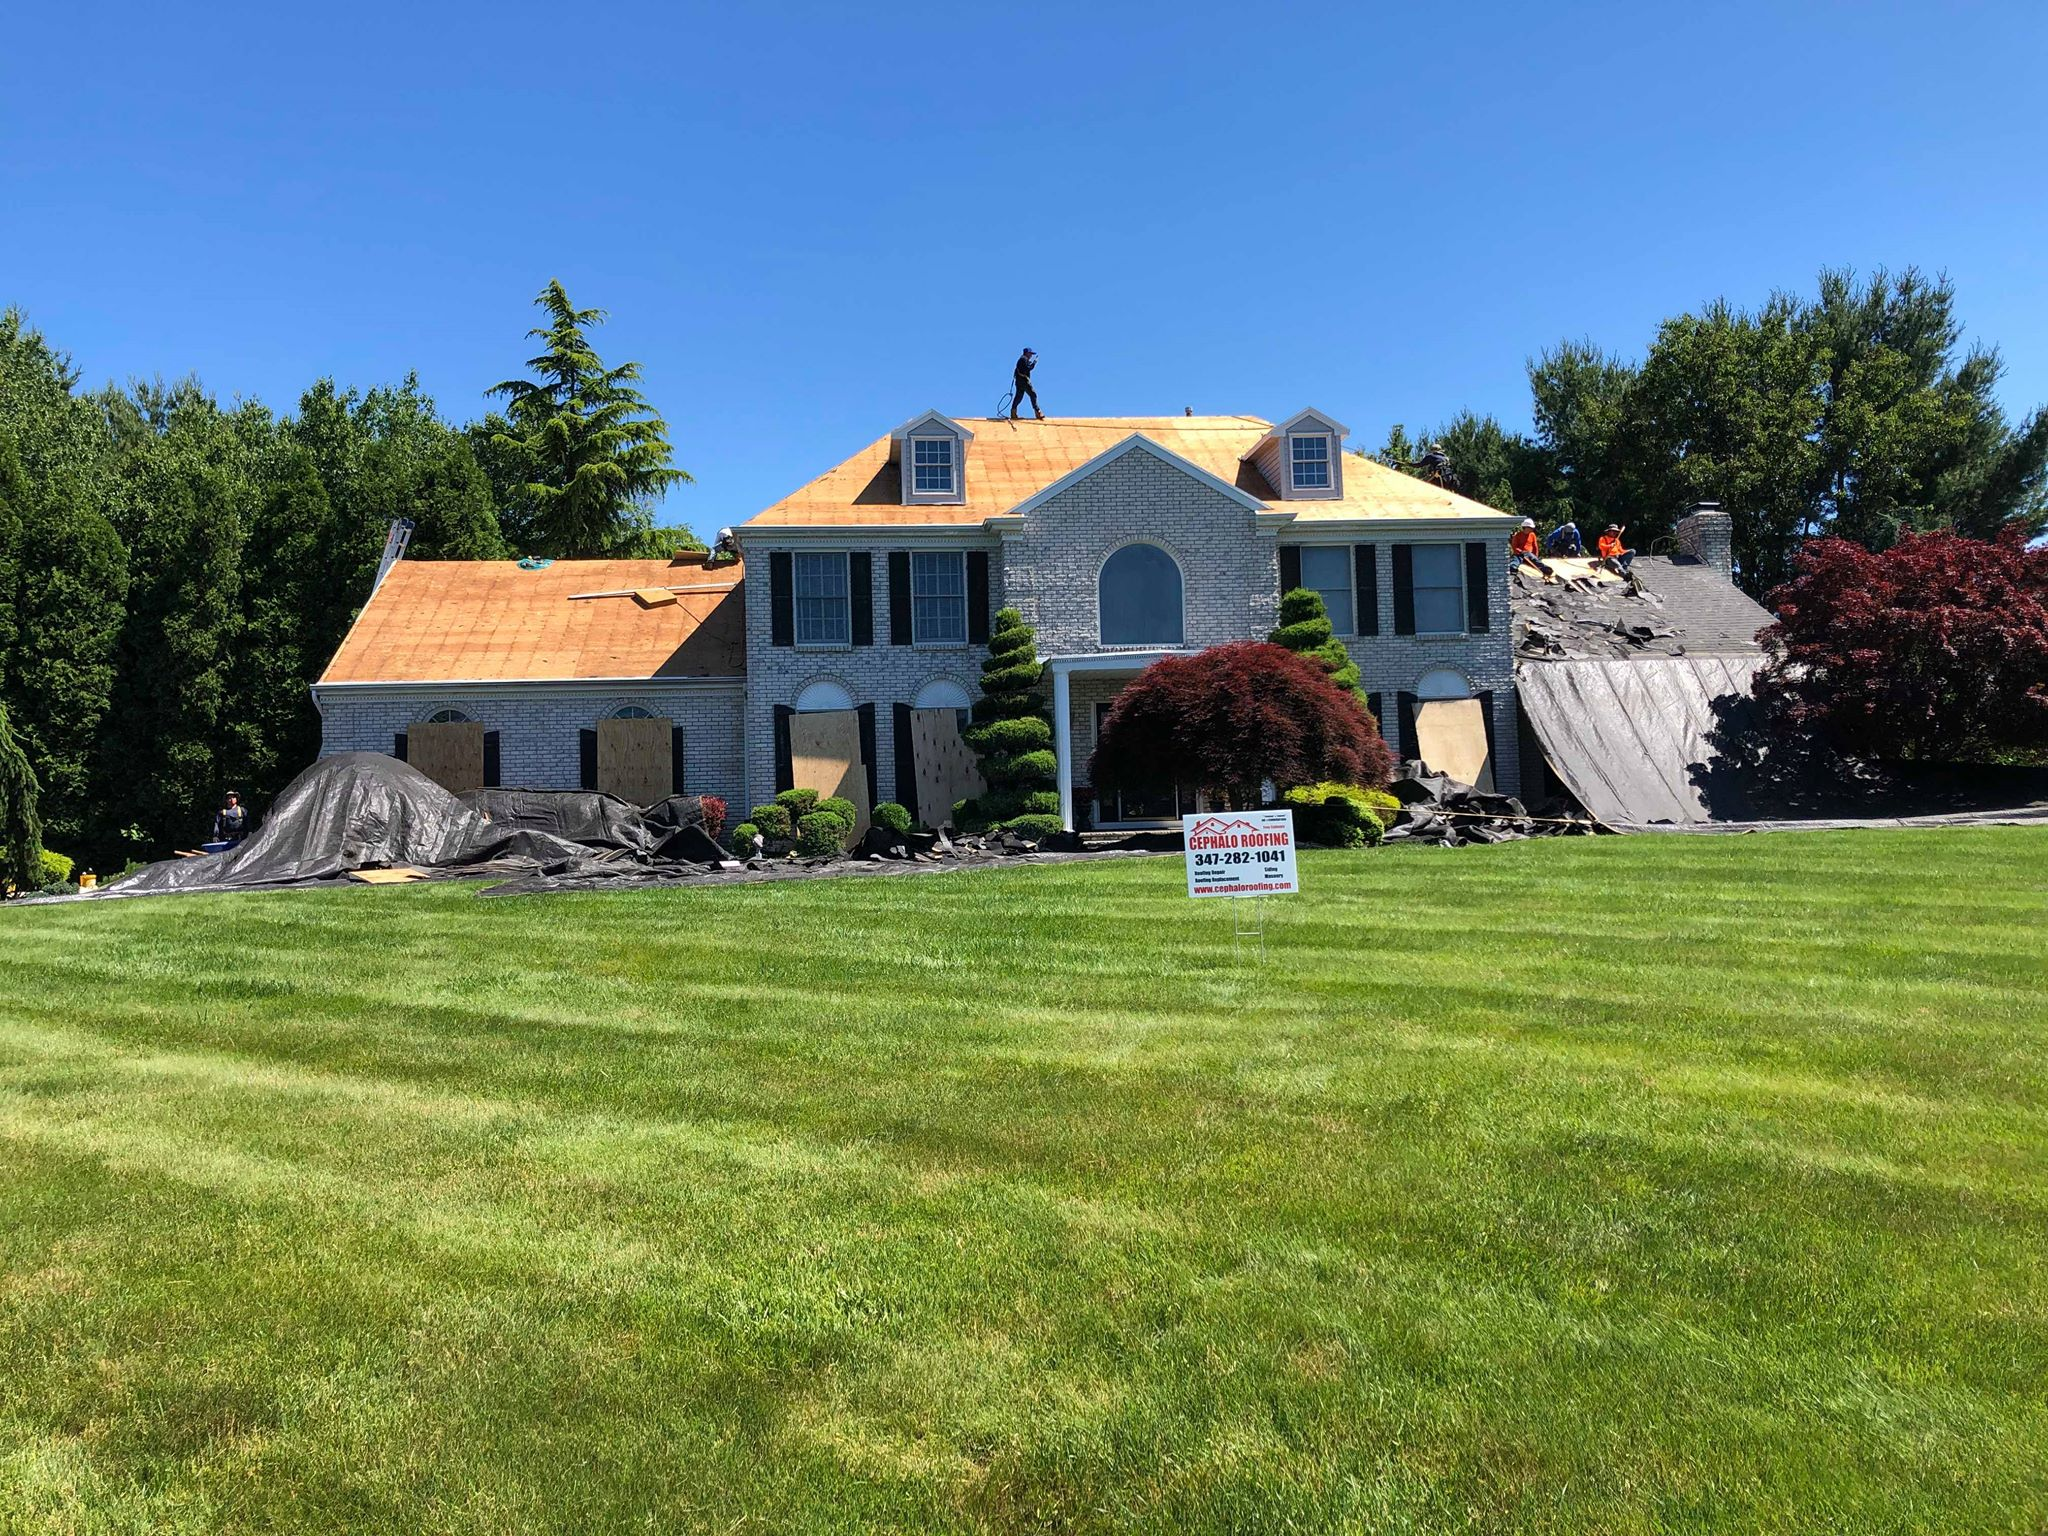 Roofing Replacement in Saddle River Nj